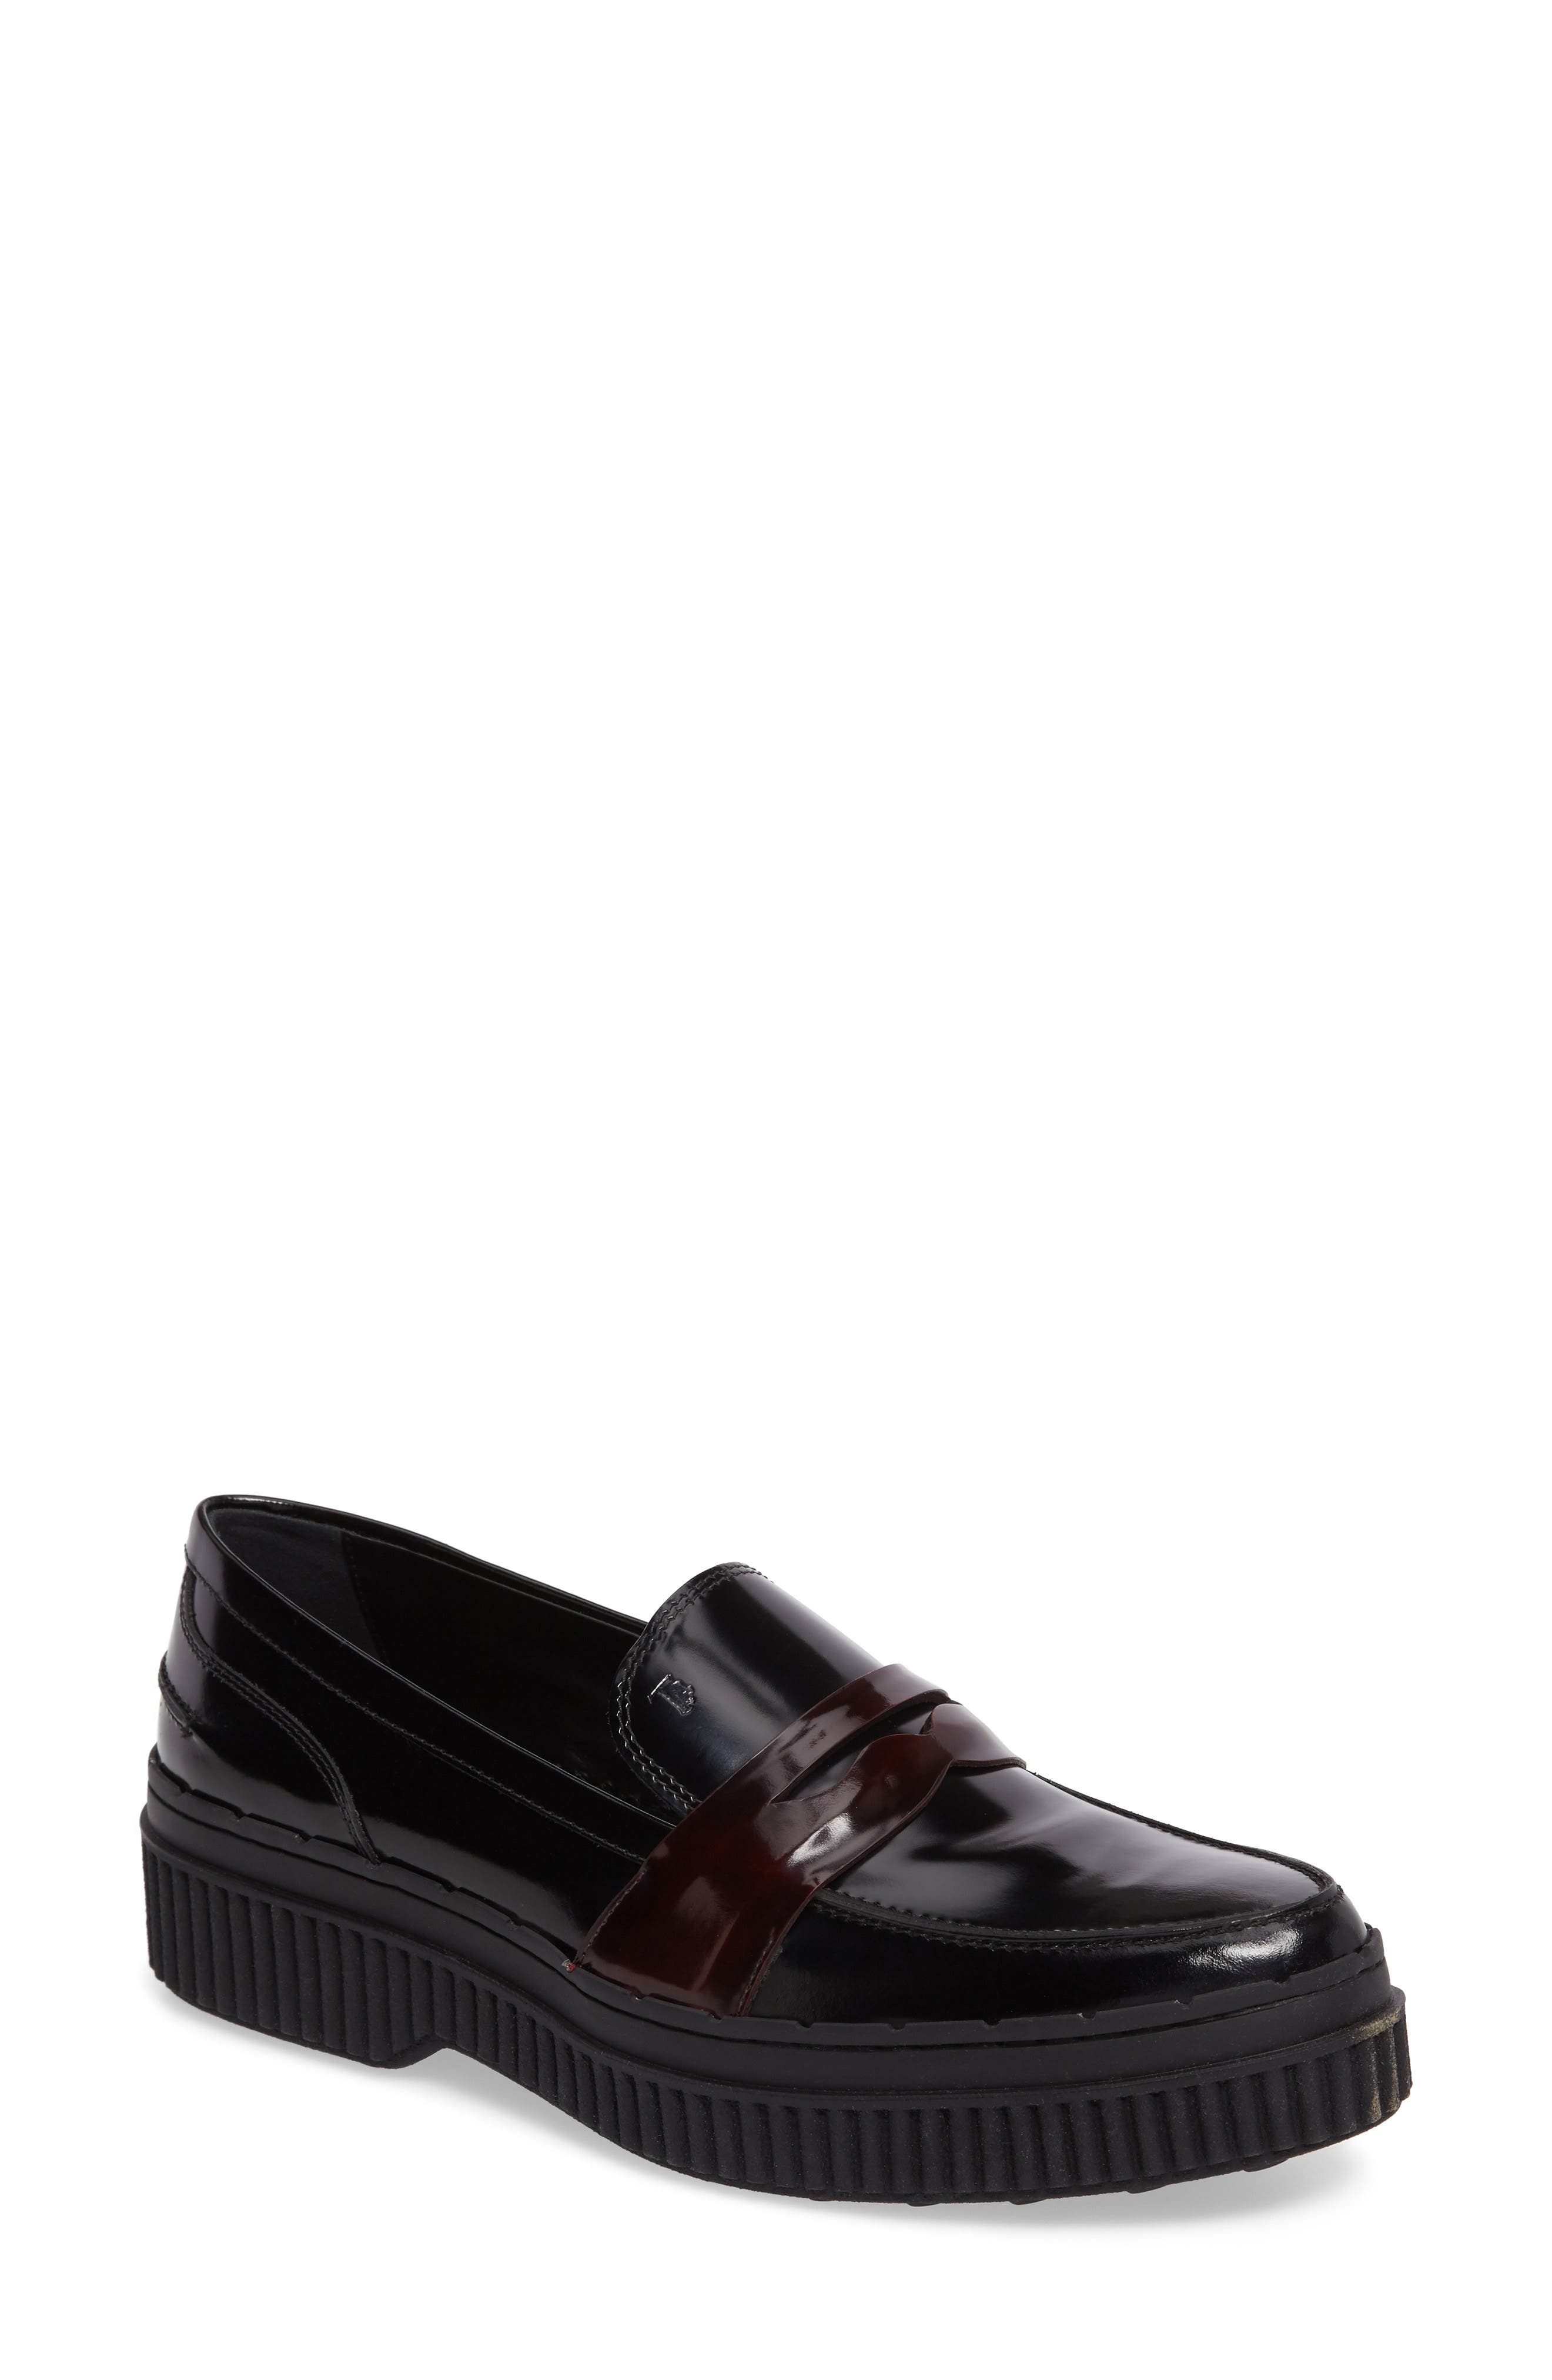 Penny Creeper Loafer,                             Main thumbnail 1, color,                             Black/ Oxblood